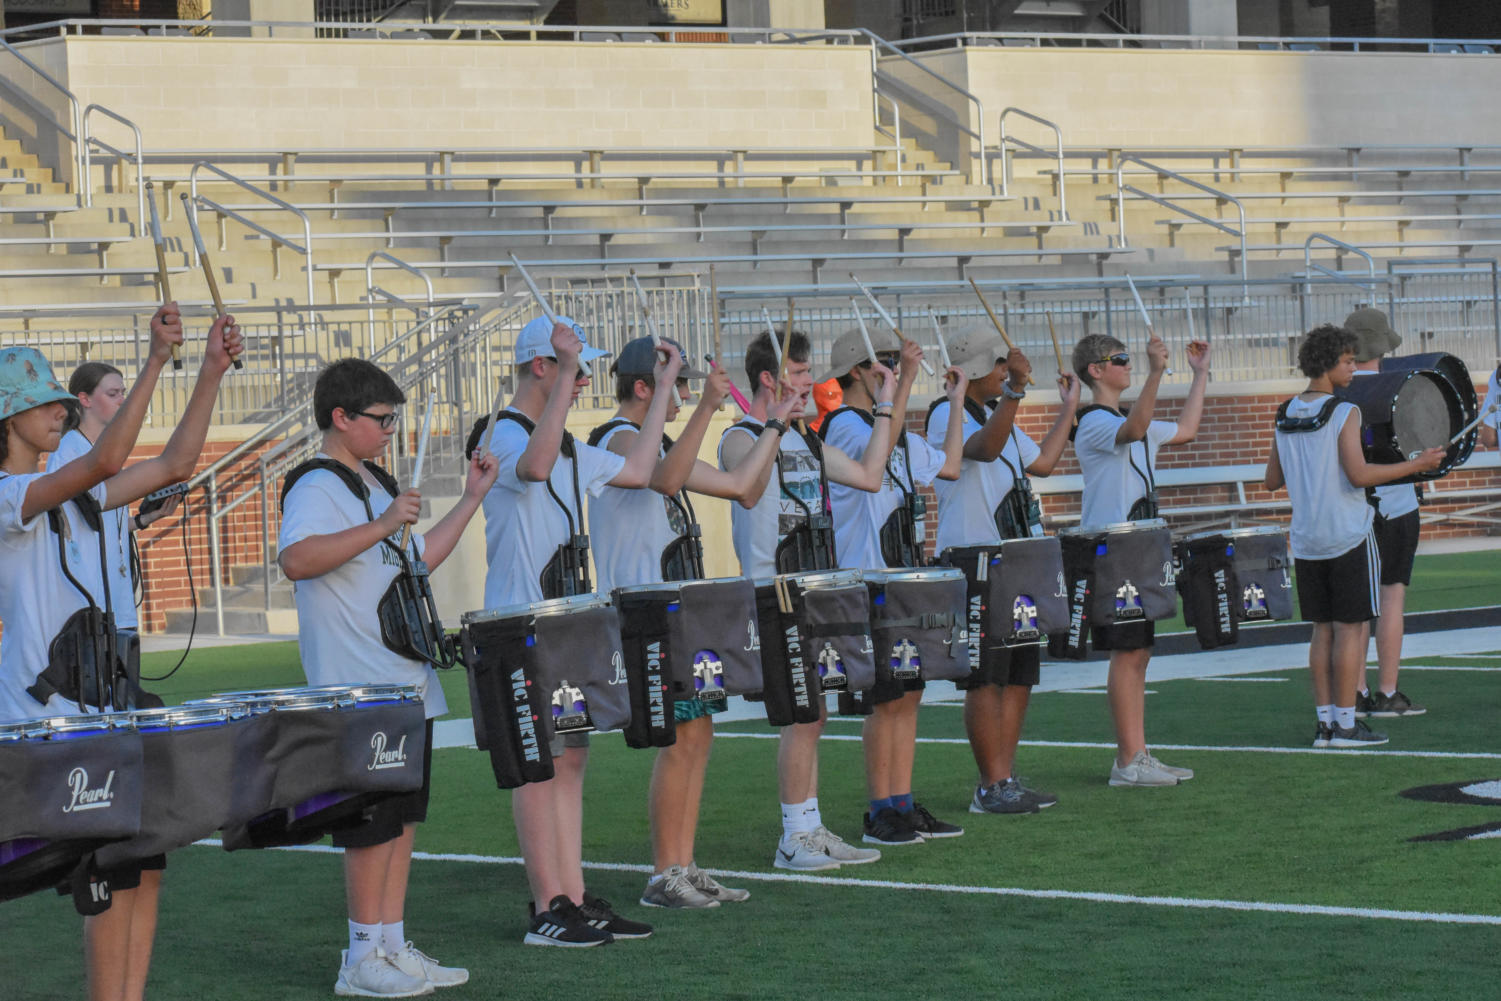 Drumline practices their drum solo Tuesday, Aug. 20. The team performs at pep rallies, band competitions and football games. They will perform during halftime at the first home game of the season, Aug. 30.